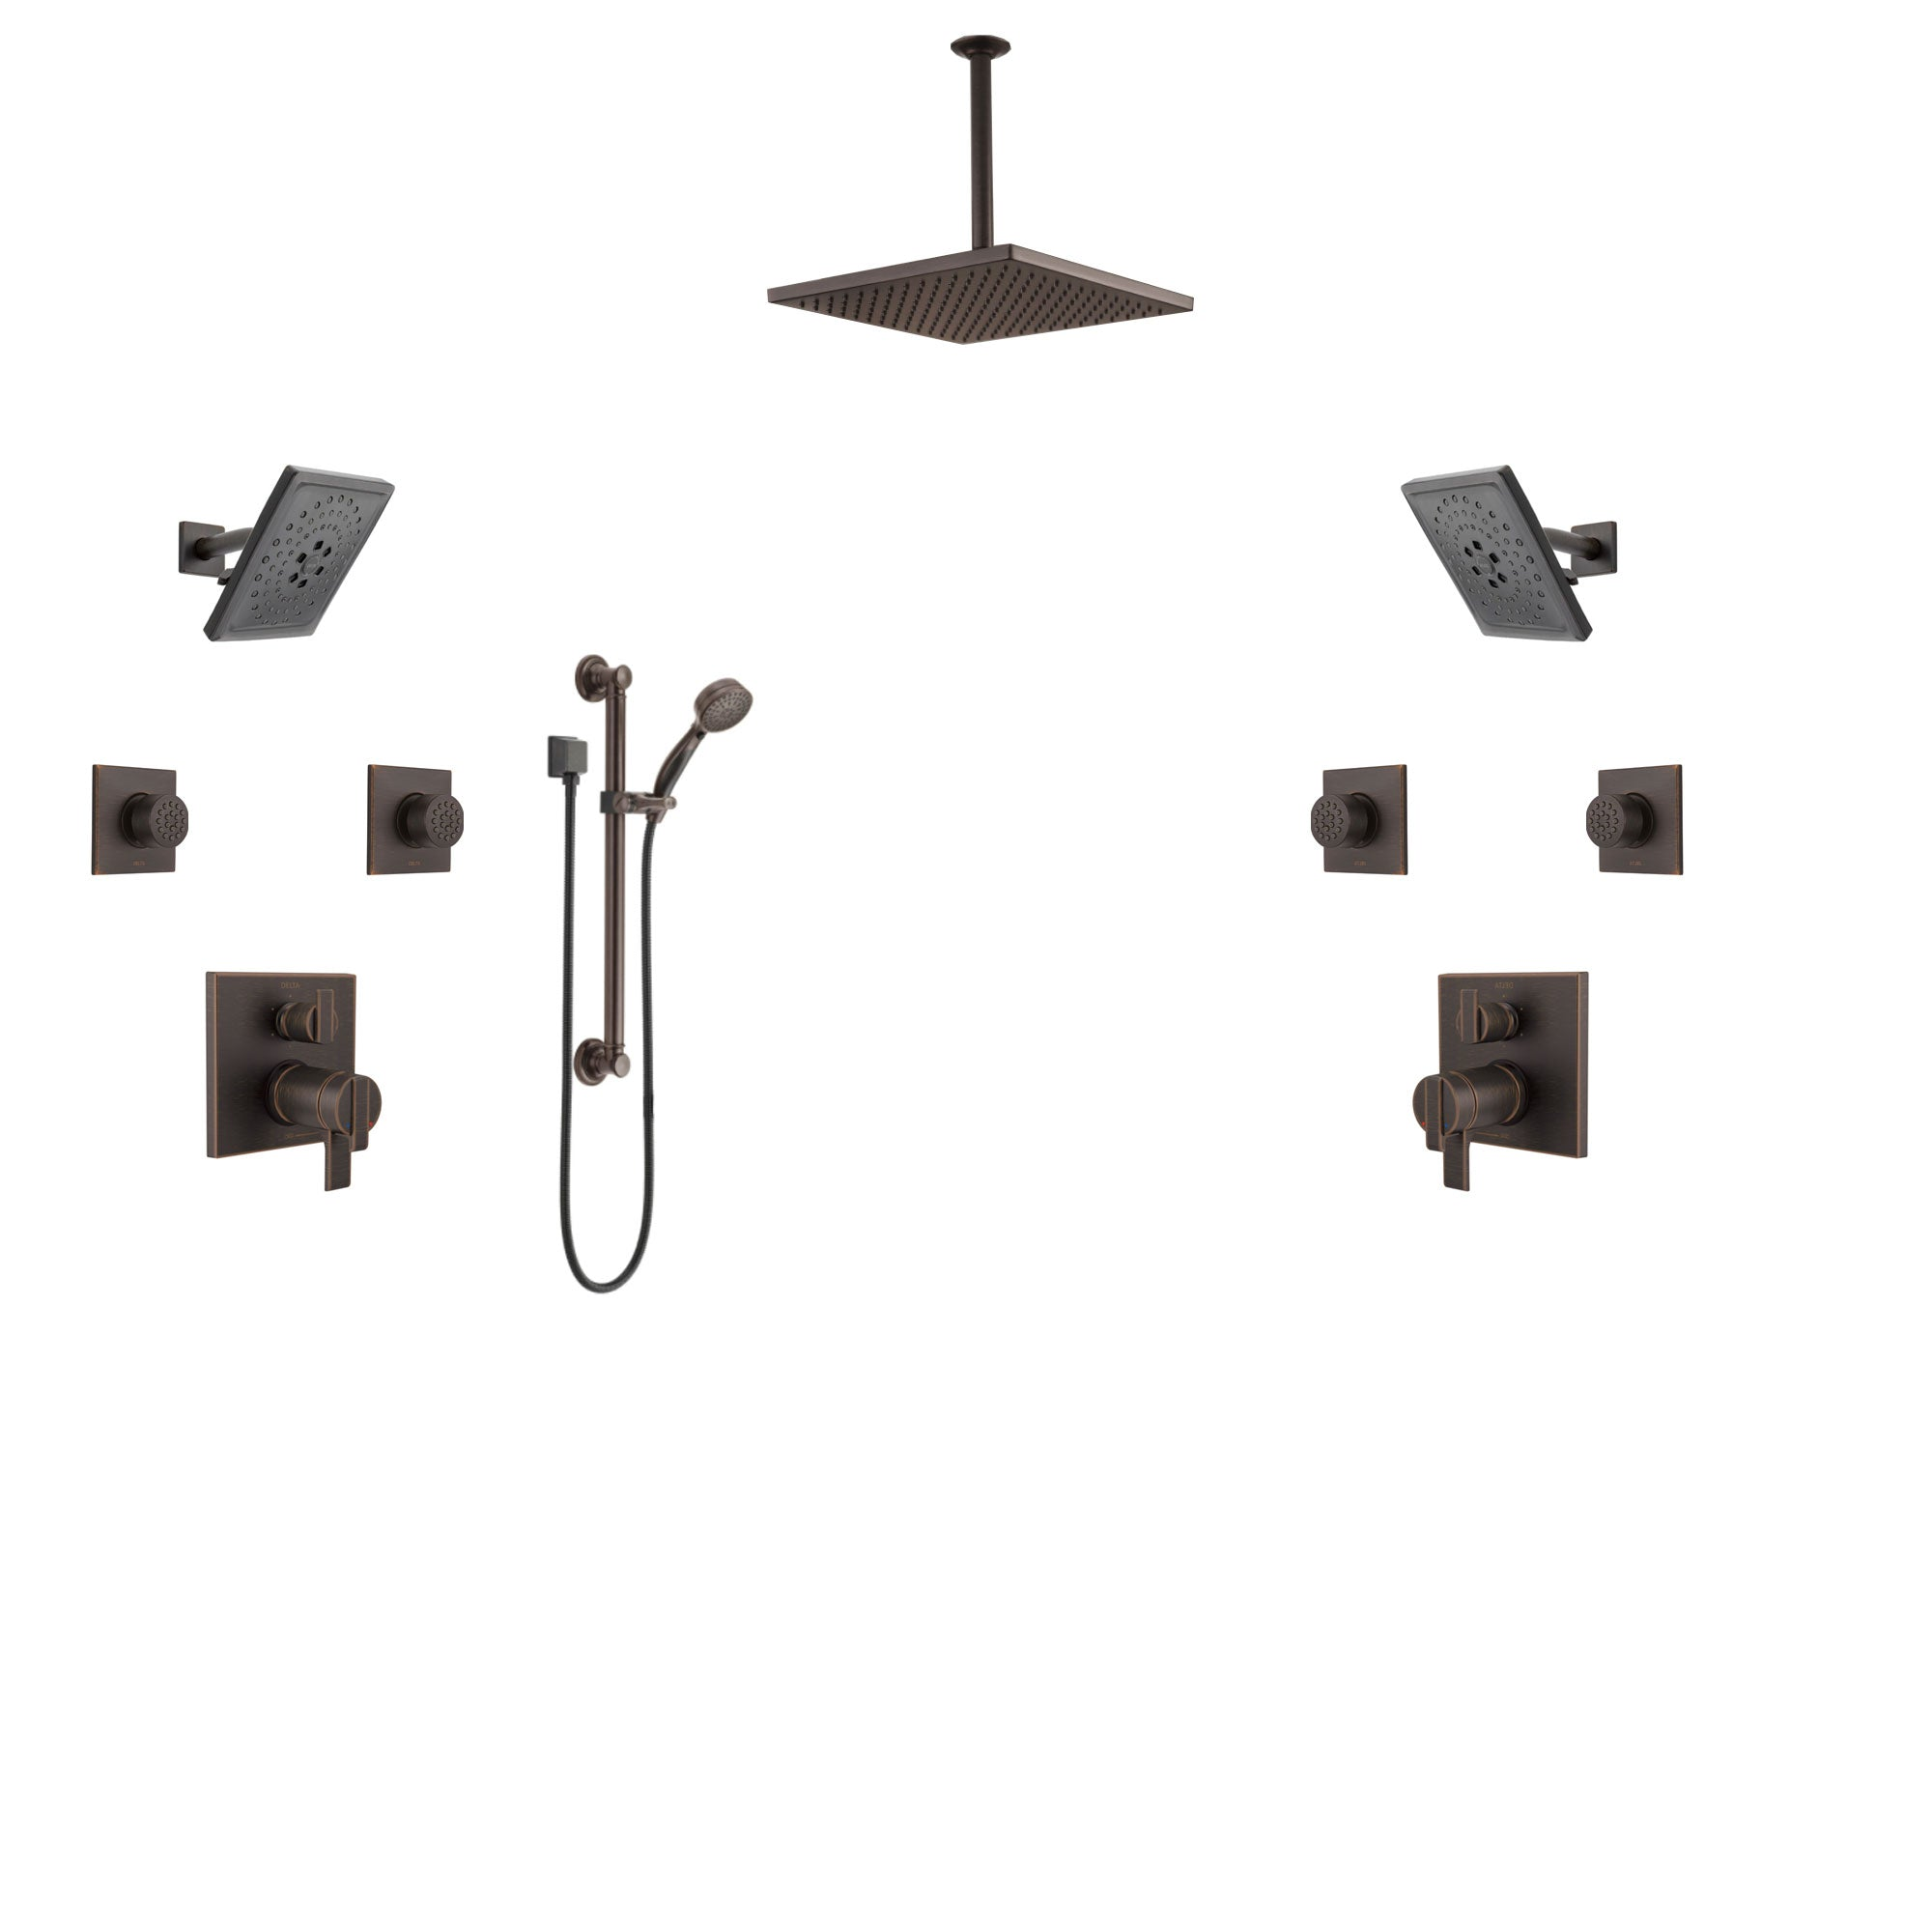 Custom Delta Ara Venetian Bronze Dual Shower System with All Valves Included CUSTOM388V